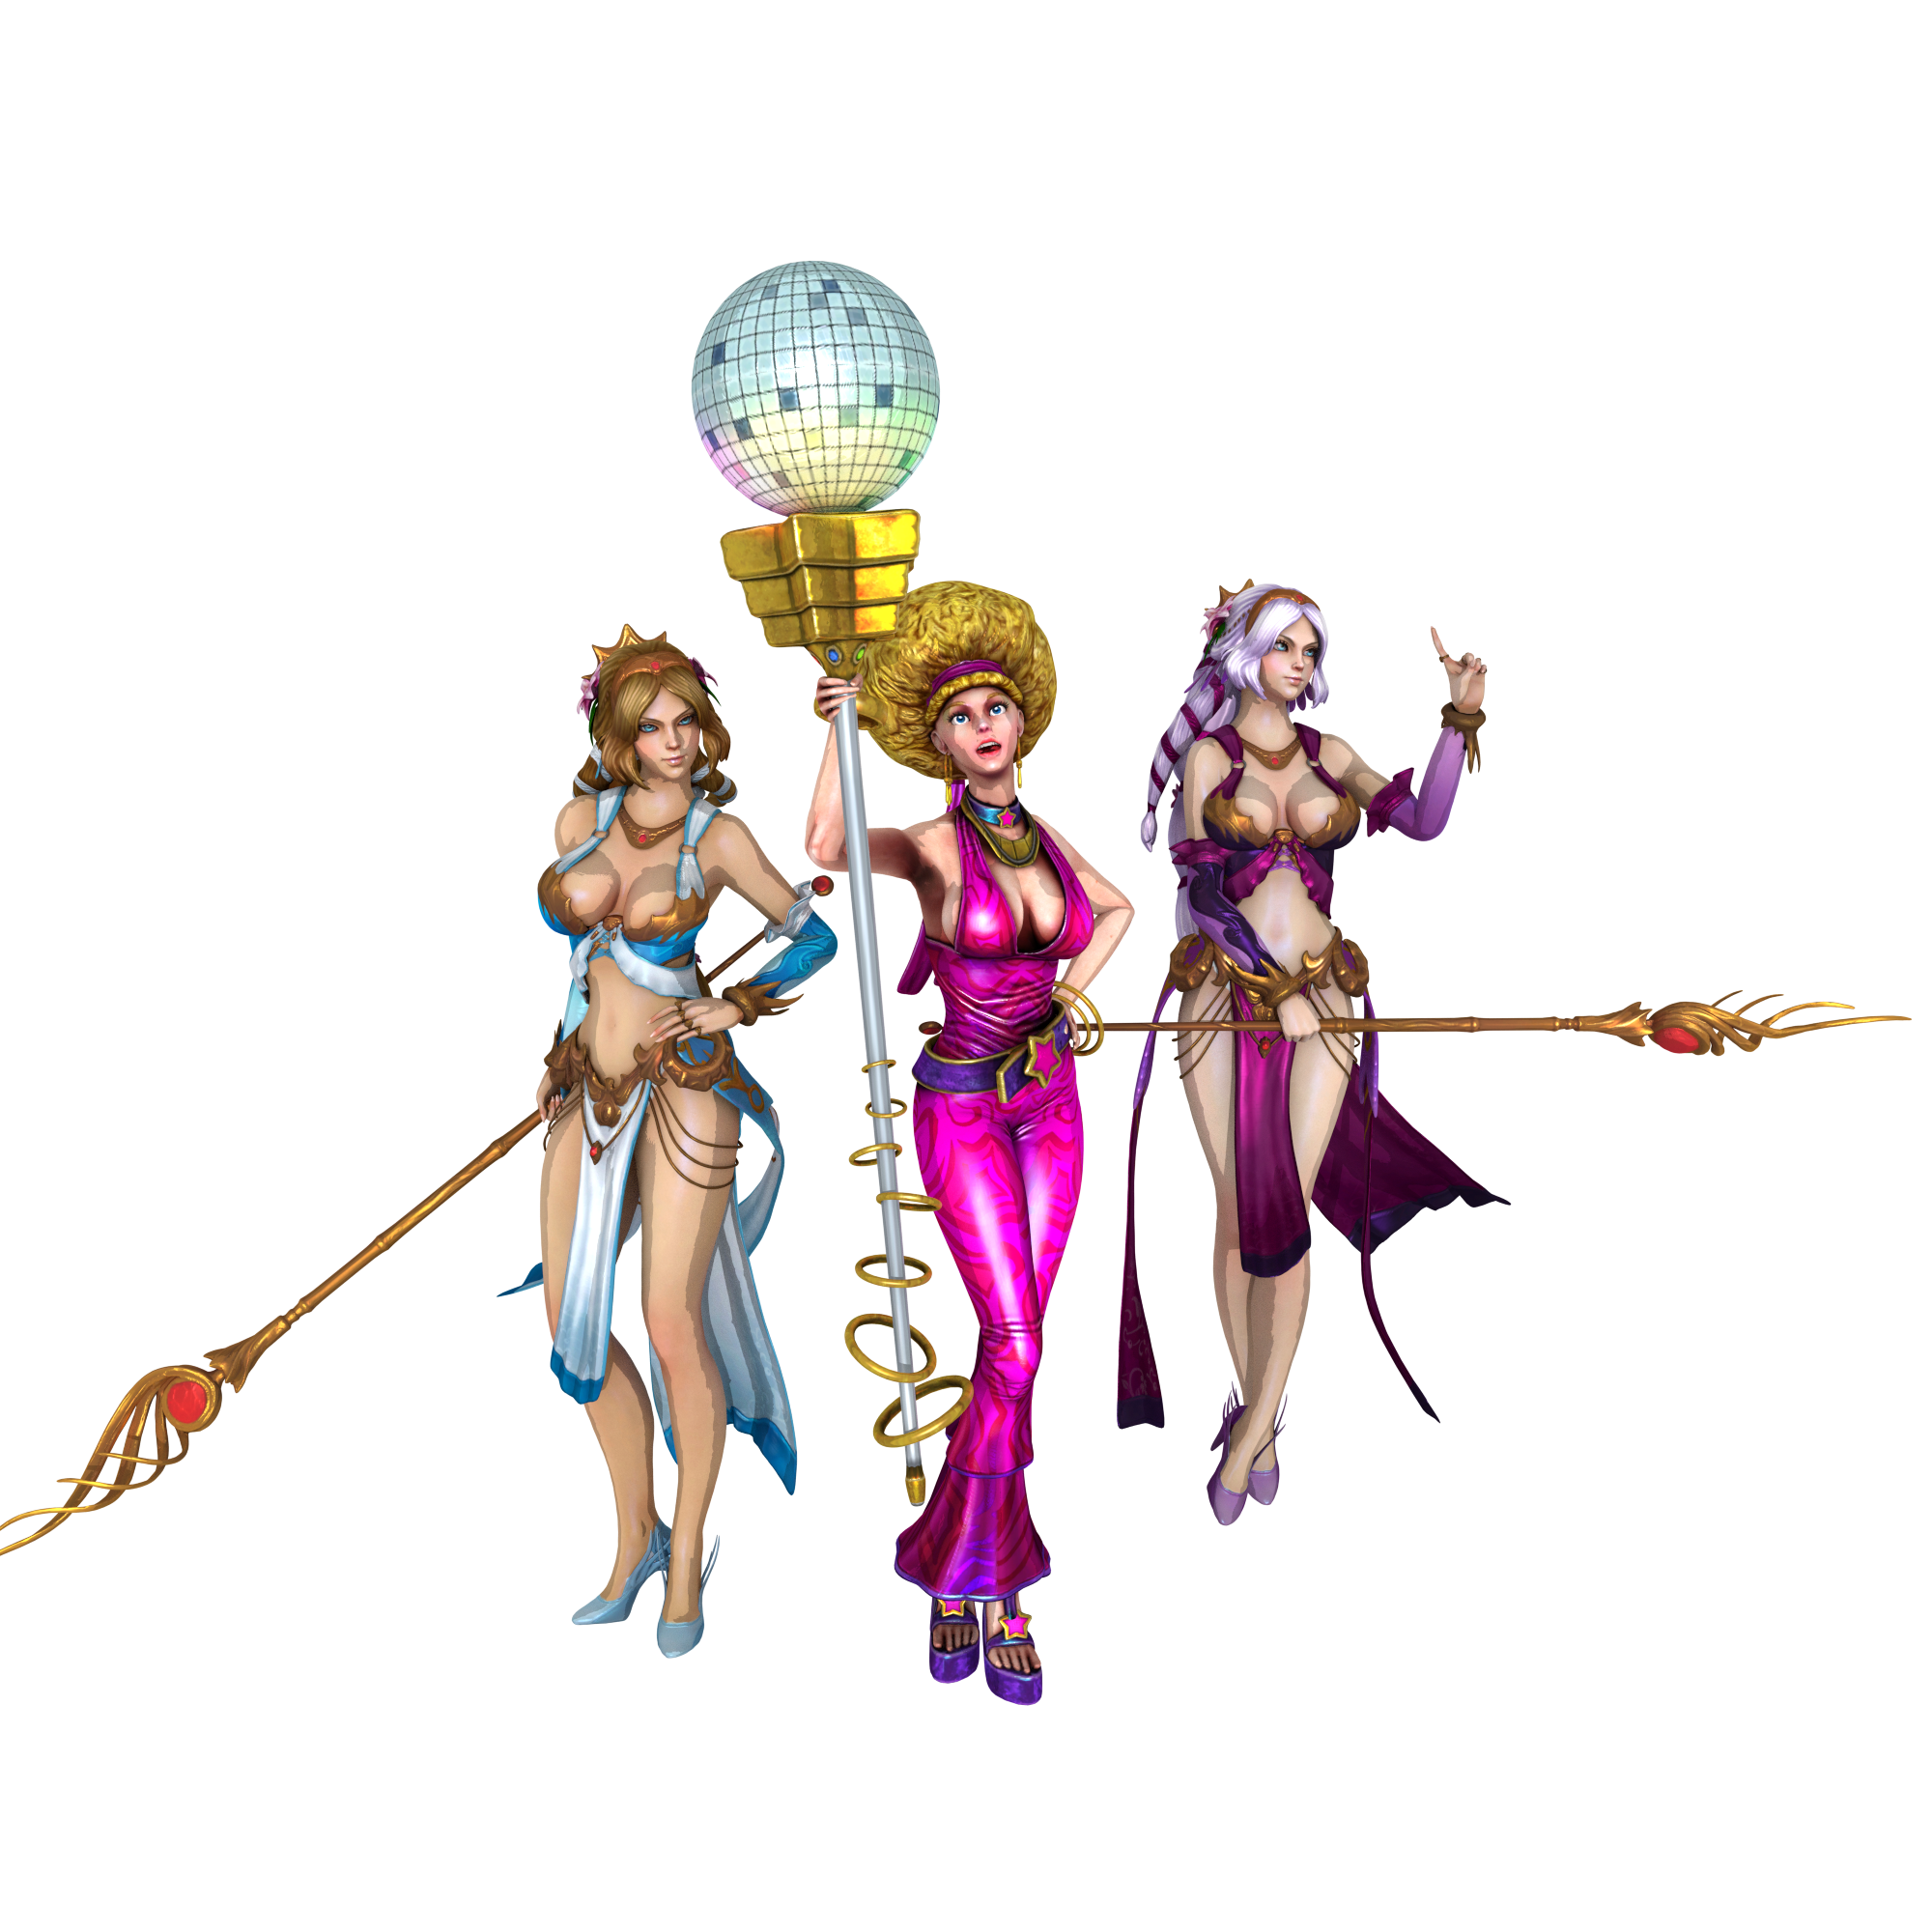 Smite Aphrodite redesign XPS ONLY by lezisell 2000x2000